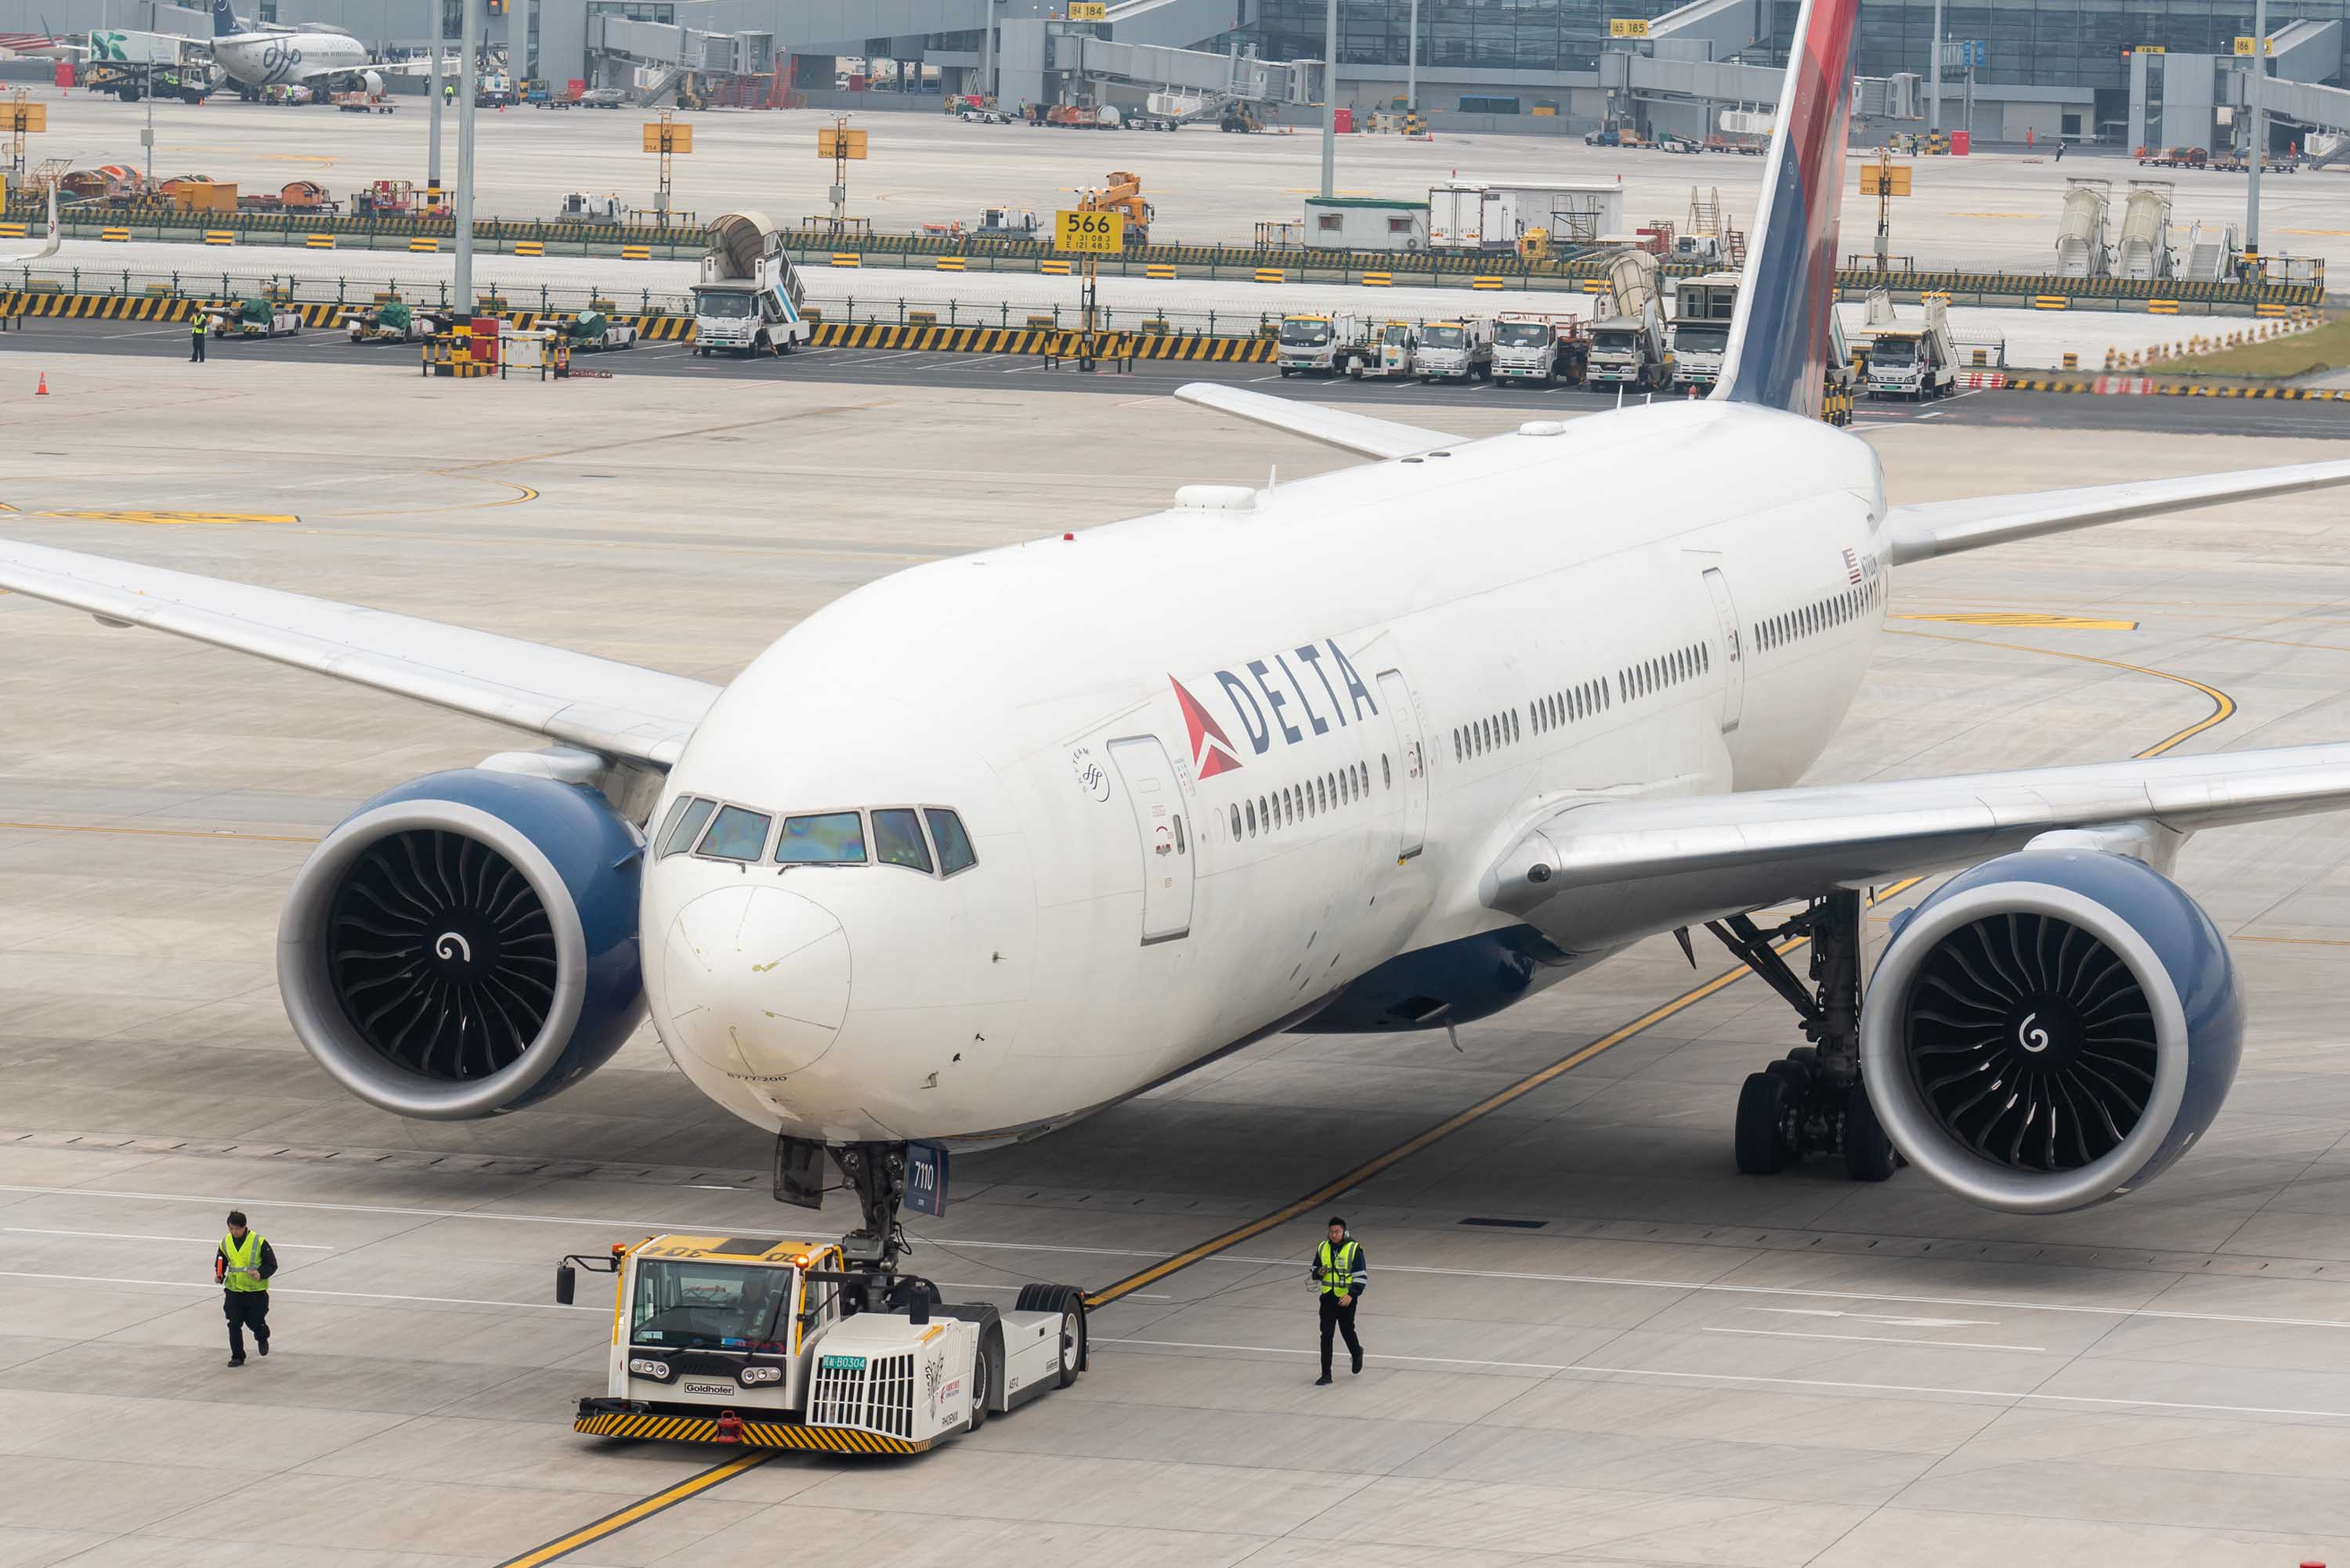 A Delta Airlines aircraft is pictured at Shanghai Pudong International Airport in November 2019.